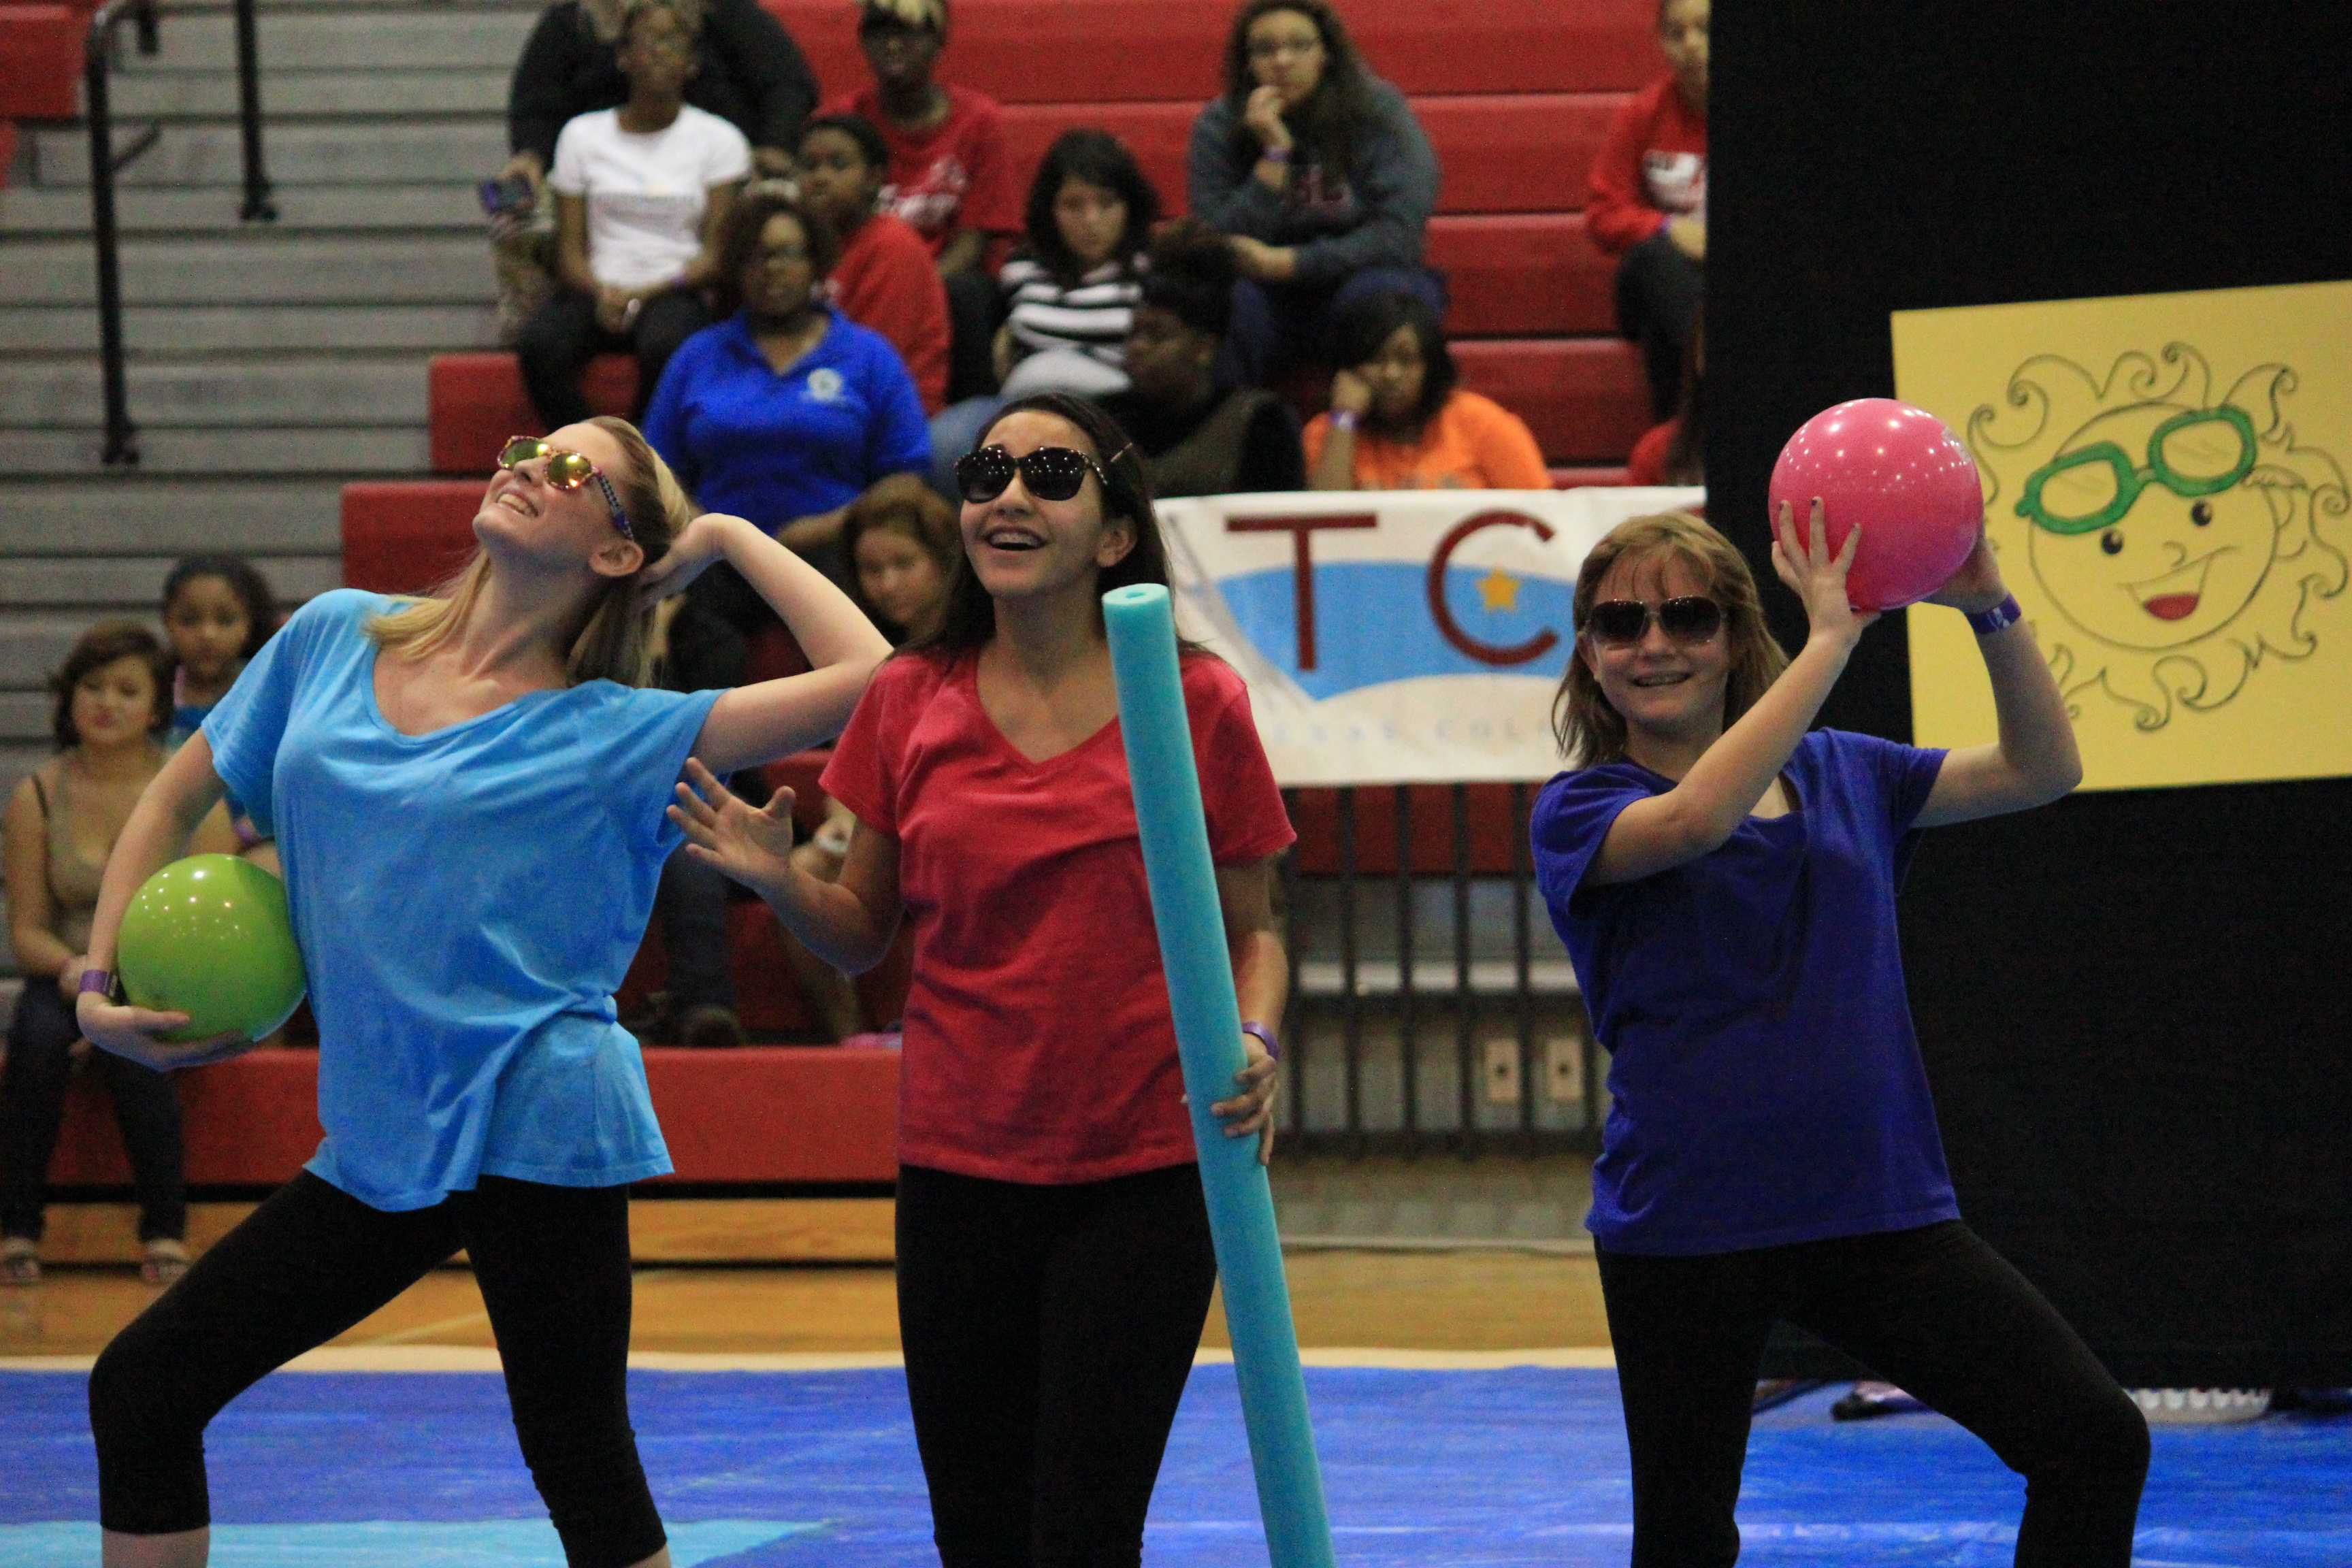 Color Guard members (left to right) Jenna Swift, Diana Vega, and Sarah Young begin their show